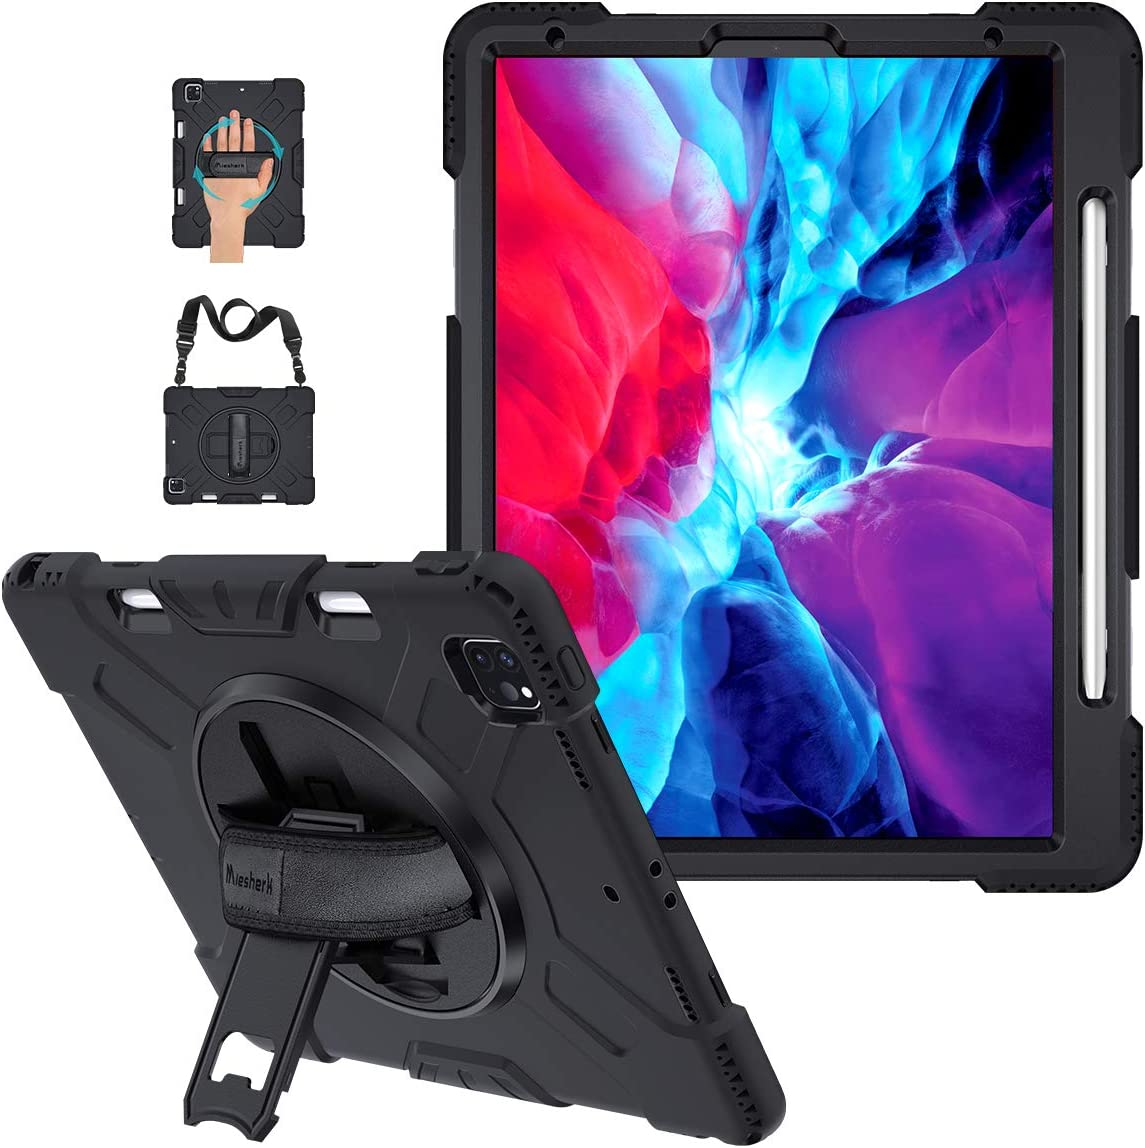 iPad Pro 12.9 Case 2020 4th Generation with Pencil Holder, Military Grade 15ft Drop Tested Heavy Duty Rugged Silicone Protective Cover + Stand + Hand & Shoulder Strap for iPad 12.9 Inch 2018 3rd Gen